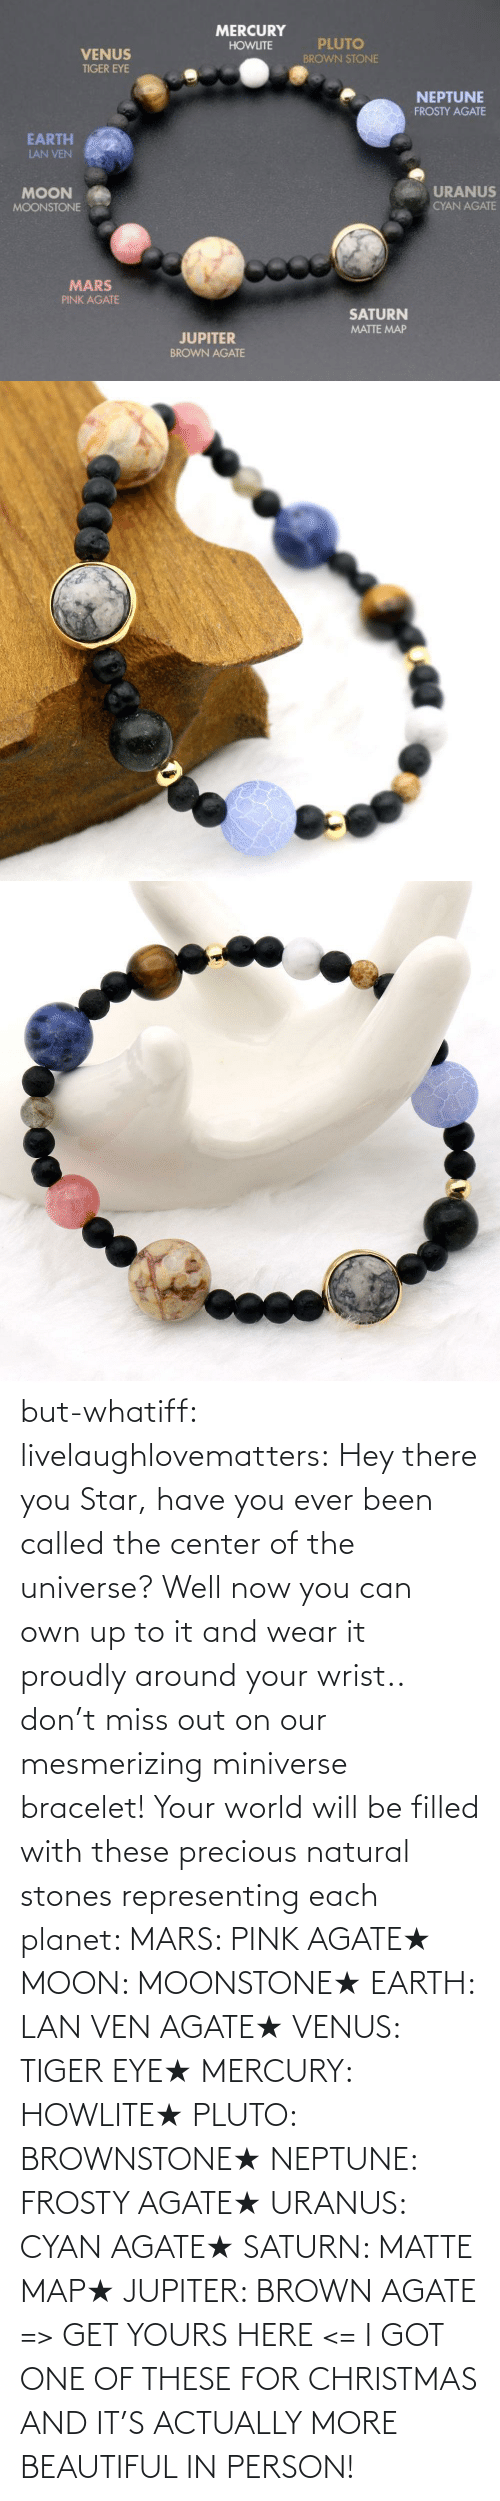 Planets: but-whatiff:  livelaughlovematters:  Hey there you Star, have you ever been called the center of the universe? Well now you can own up to it and wear it proudly around your wrist.. don't miss out on our mesmerizing miniverse bracelet! Your world will be filled with these precious natural stones representing each planet:  MARS: PINK AGATE★ MOON: MOONSTONE★ EARTH: LAN VEN AGATE★ VENUS: TIGER EYE★ MERCURY: HOWLITE★ PLUTO: BROWNSTONE★ NEPTUNE: FROSTY AGATE★ URANUS: CYAN AGATE★ SATURN: MATTE MAP★ JUPITER: BROWN AGATE => GET YOURS HERE <=  I GOT ONE OF THESE FOR CHRISTMAS AND IT'S ACTUALLY MORE BEAUTIFUL IN PERSON!